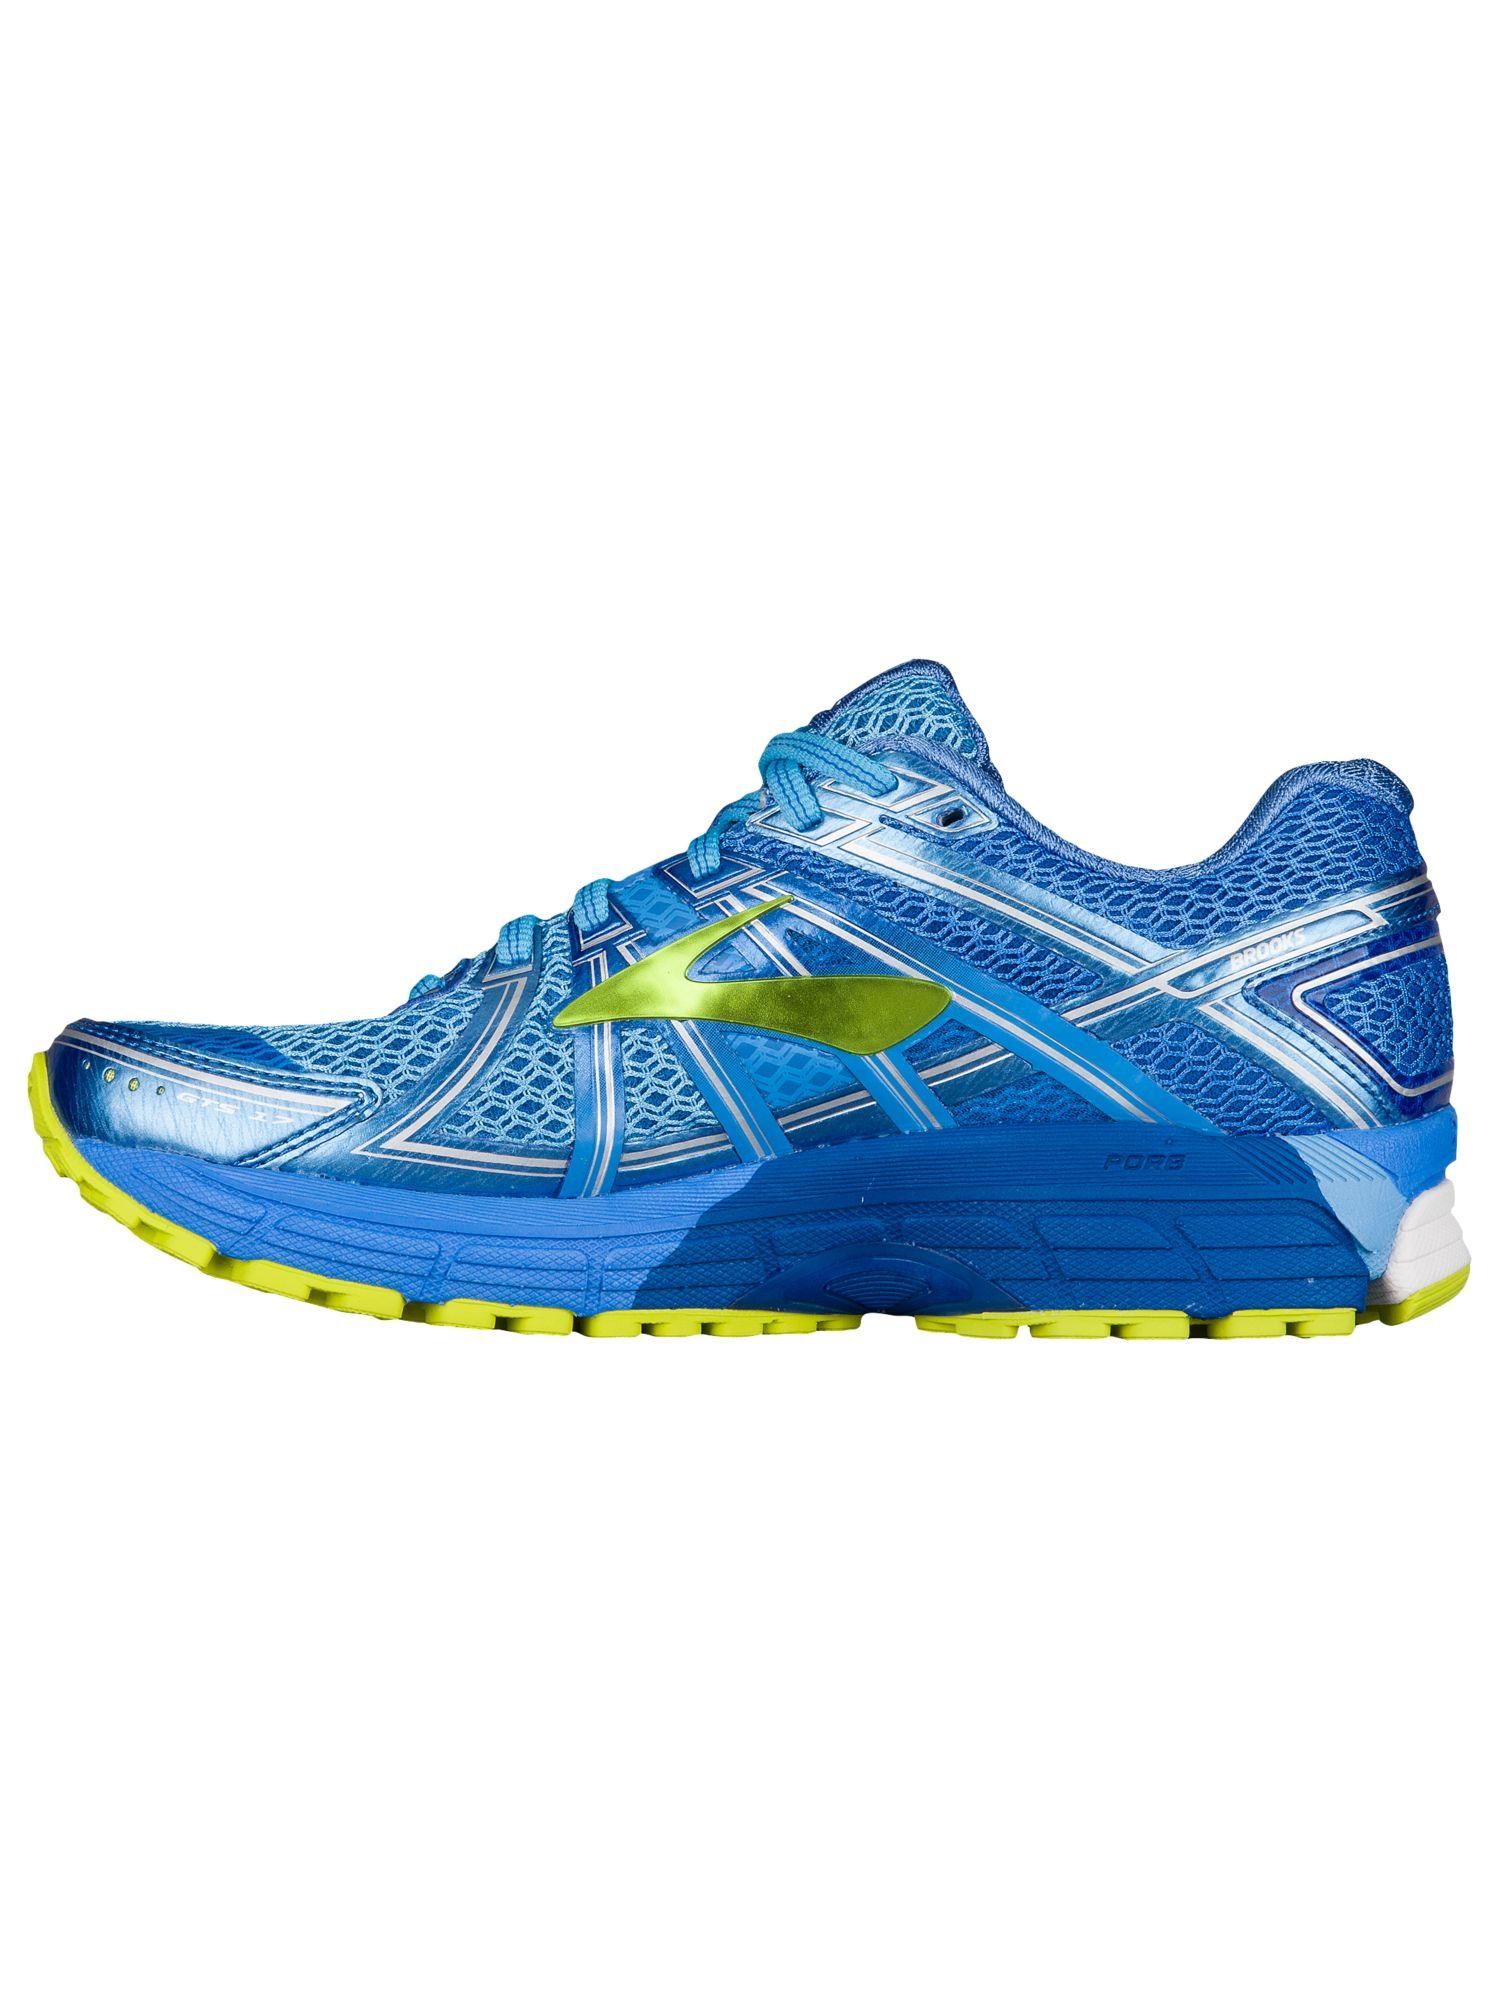 a7a2732cacb Brooks - Brooks Adrenaline GTS 17 - Women s - Running - Shoes - Azure Blue Palace  Blue Lime Punch - Walmart.com